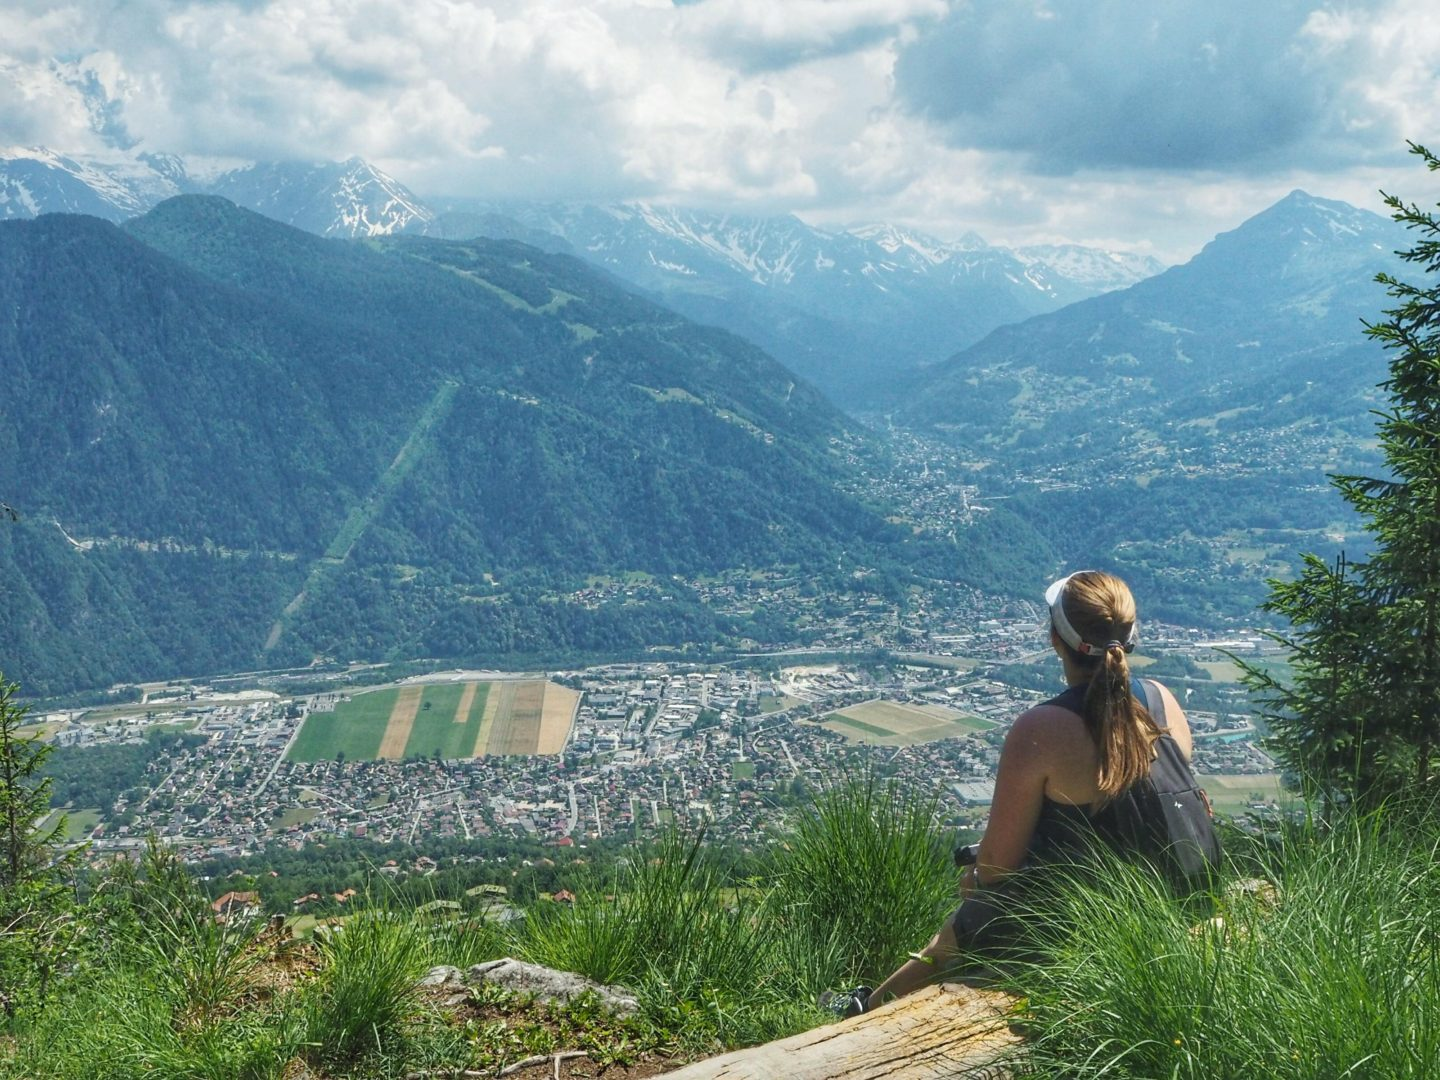 Hiking in the French Alps with Quechua